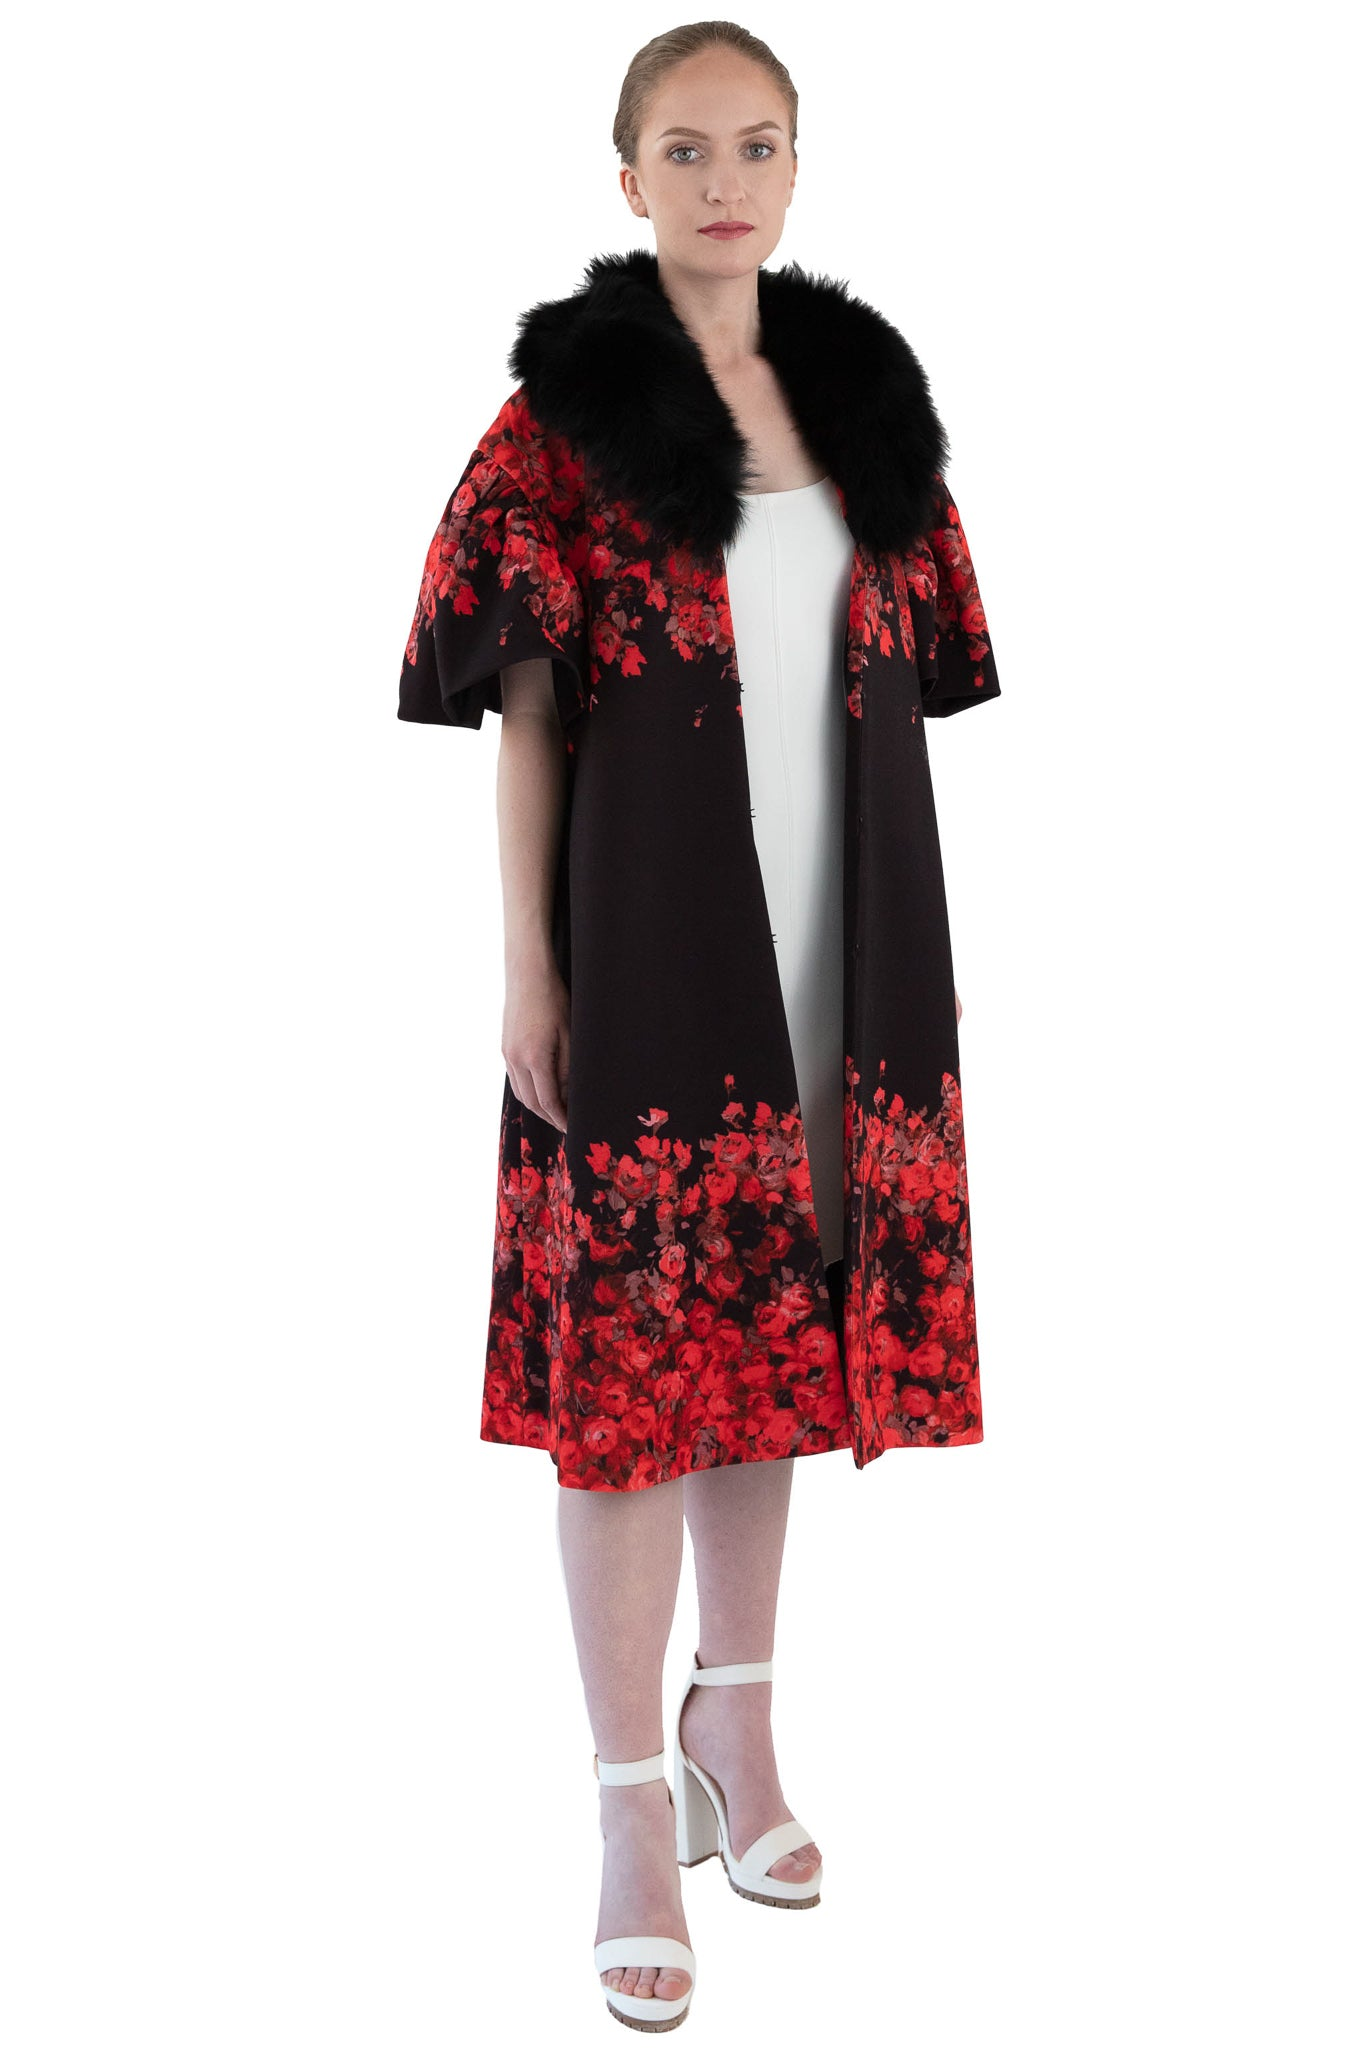 Women's red floral coat with detachable black fox fur collar